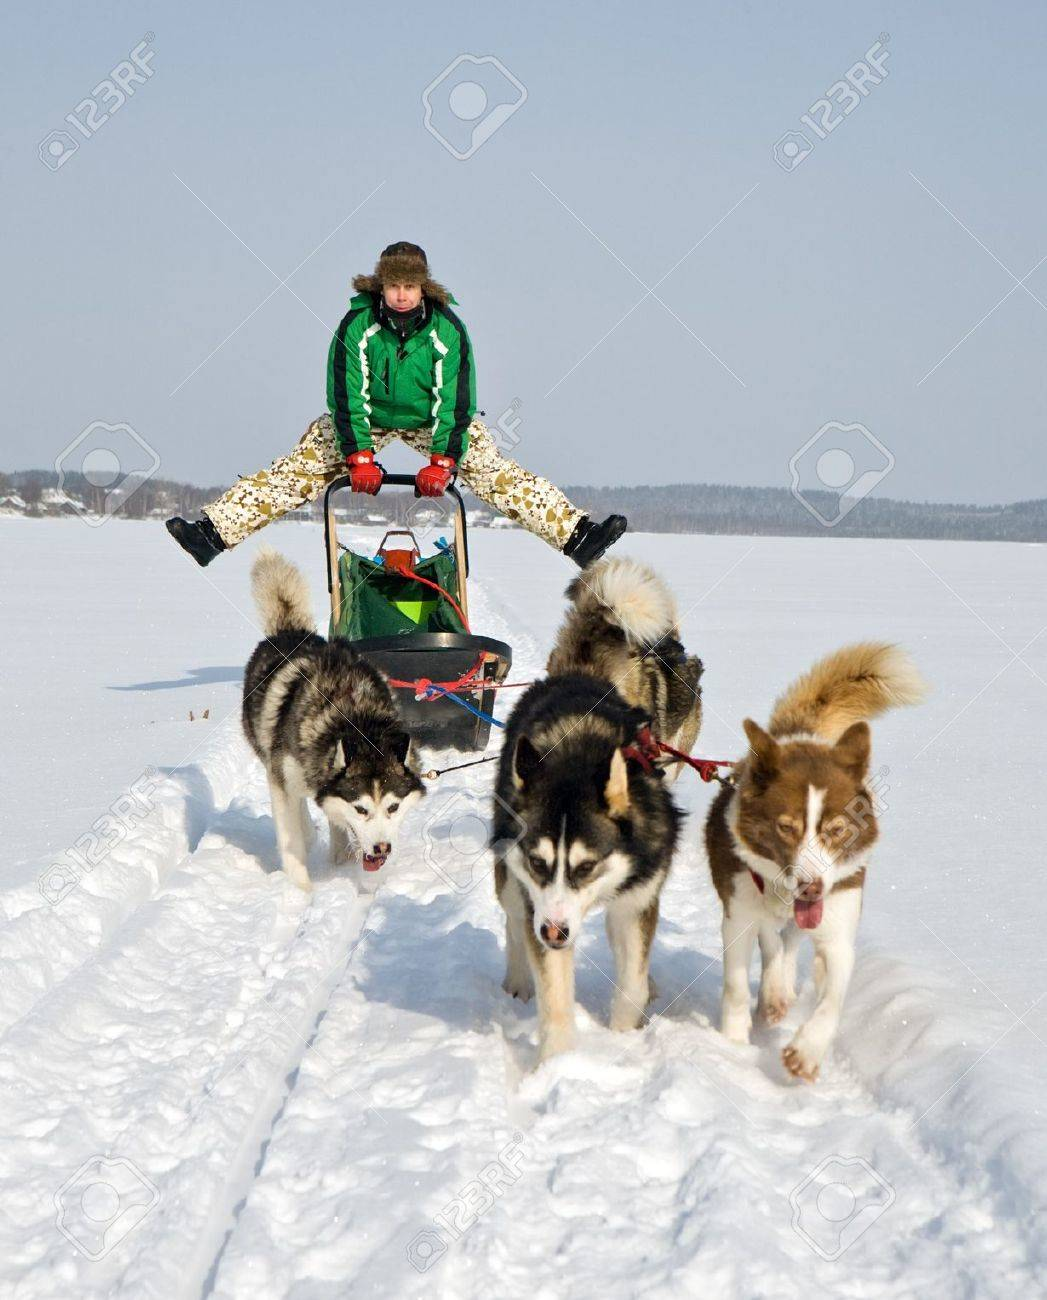 man in dog sledding travel across snow field stock photo picture